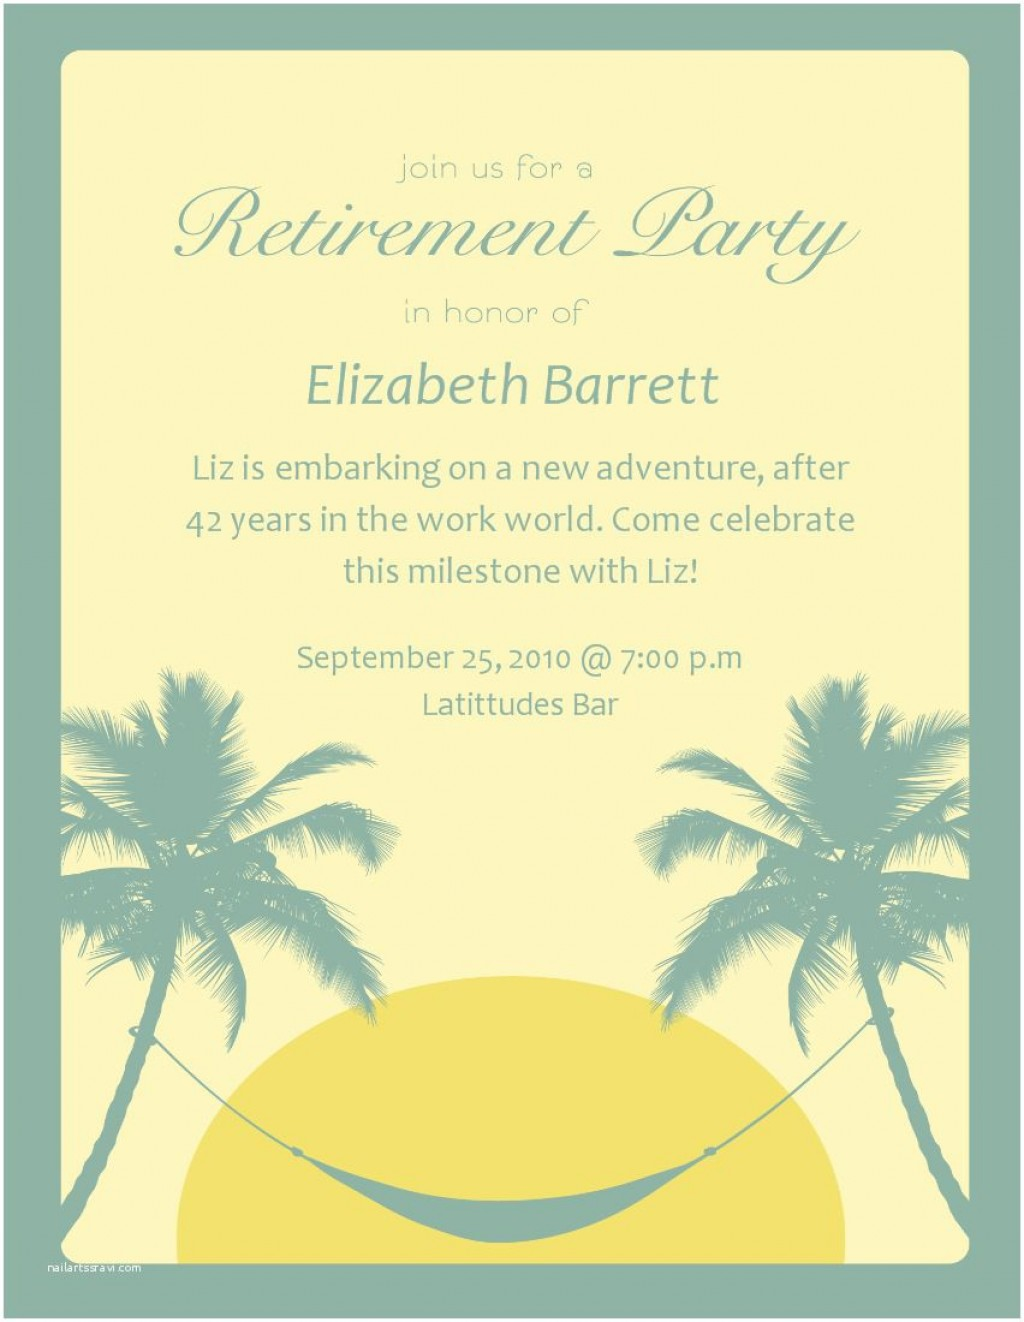 008 Surprising Free Retirement Invitation Template Image  Templates Microsoft Word Party FlyerLarge